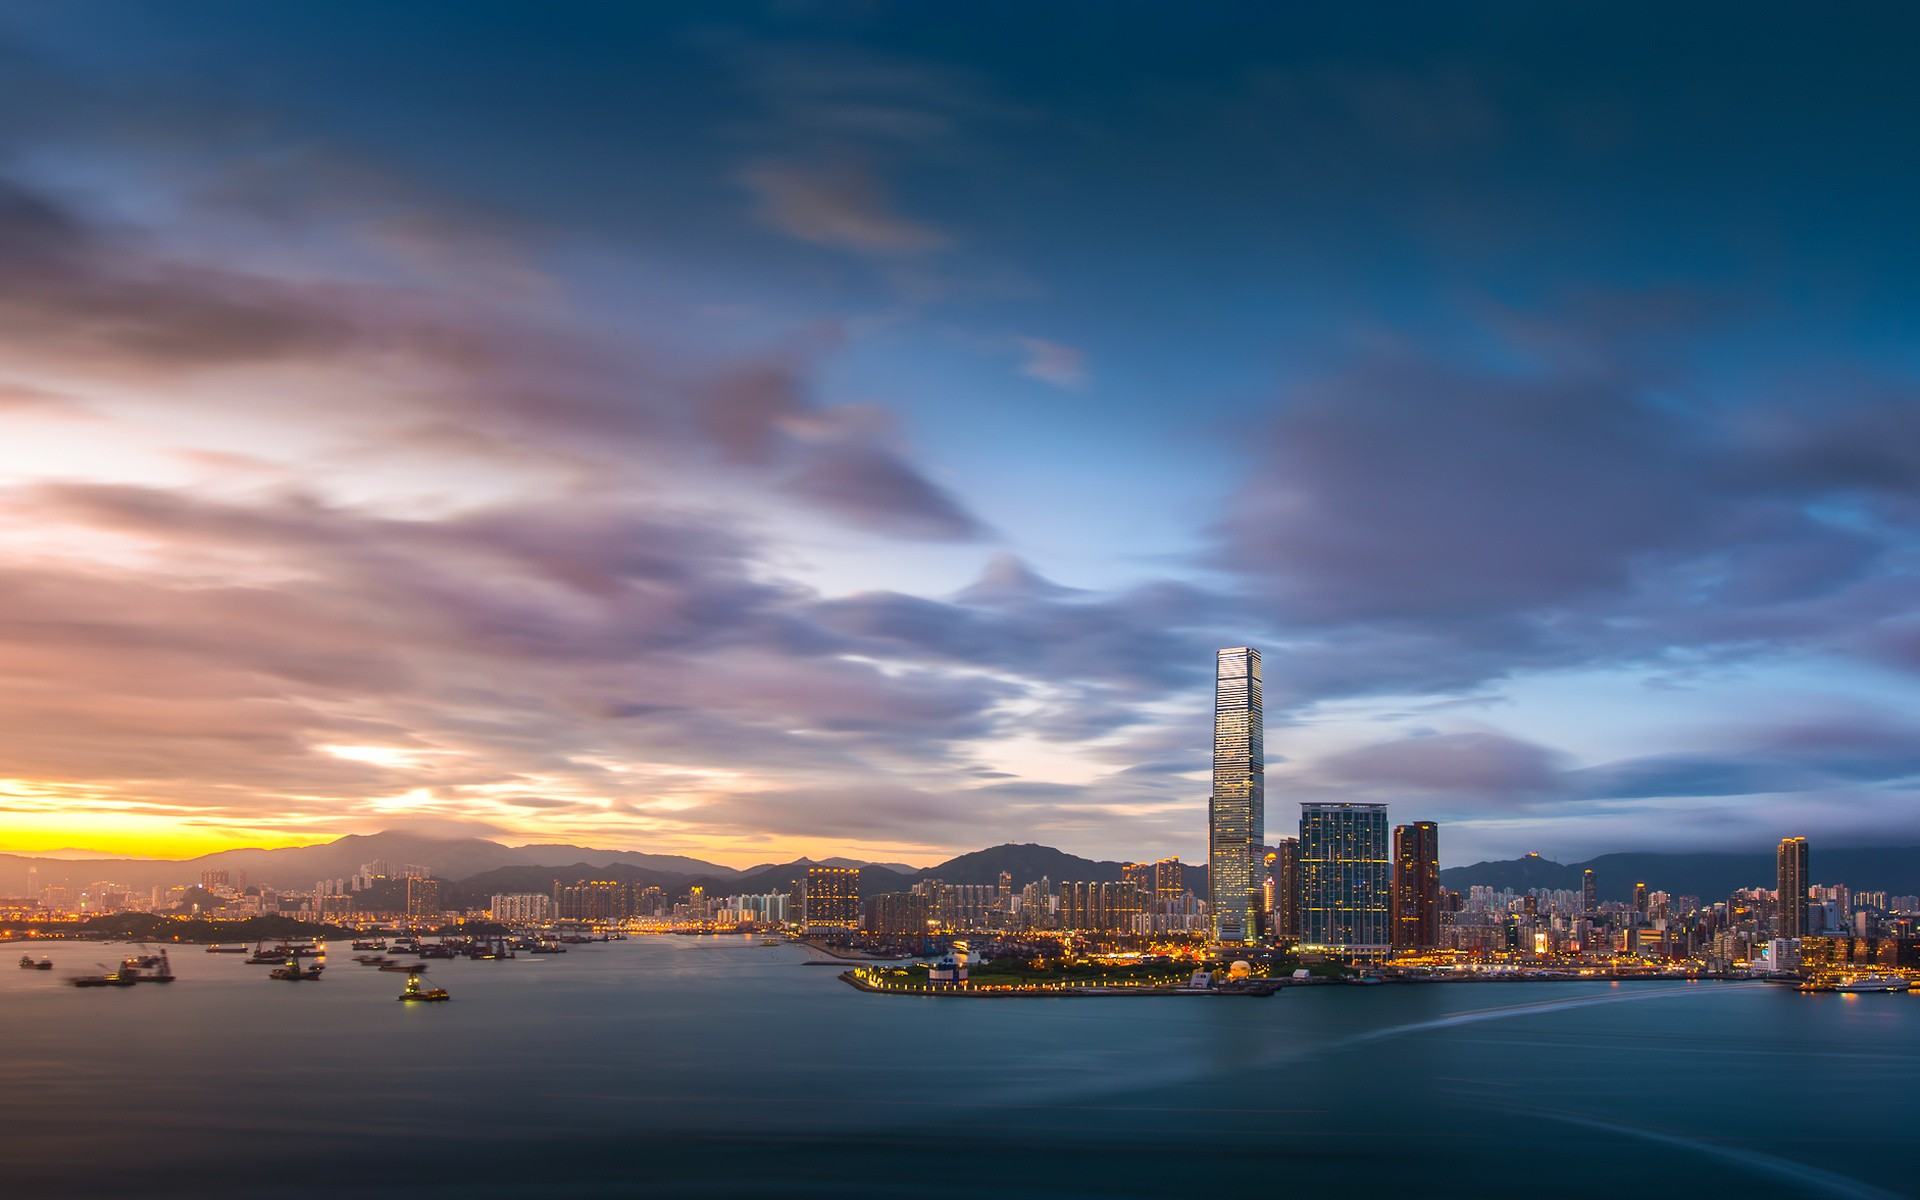 General 1920x1200 architecture building skyscraper city cityscape urban clouds Hong Kong China water sea ship evening sunset harbor long exposure hills lights